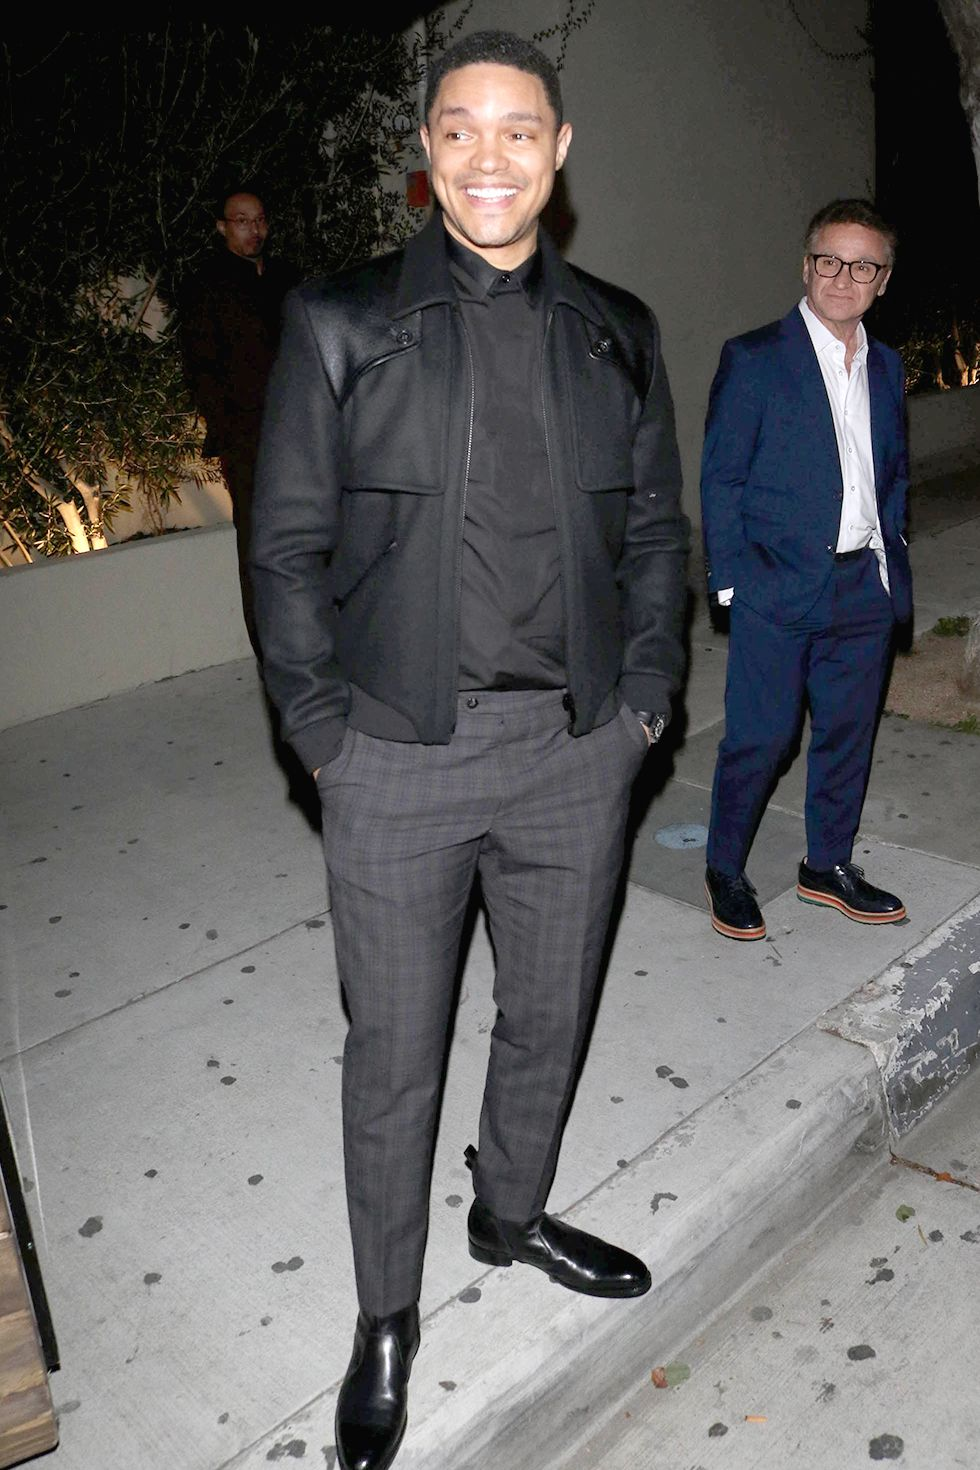 Trevor Noah Another black option, but for night.